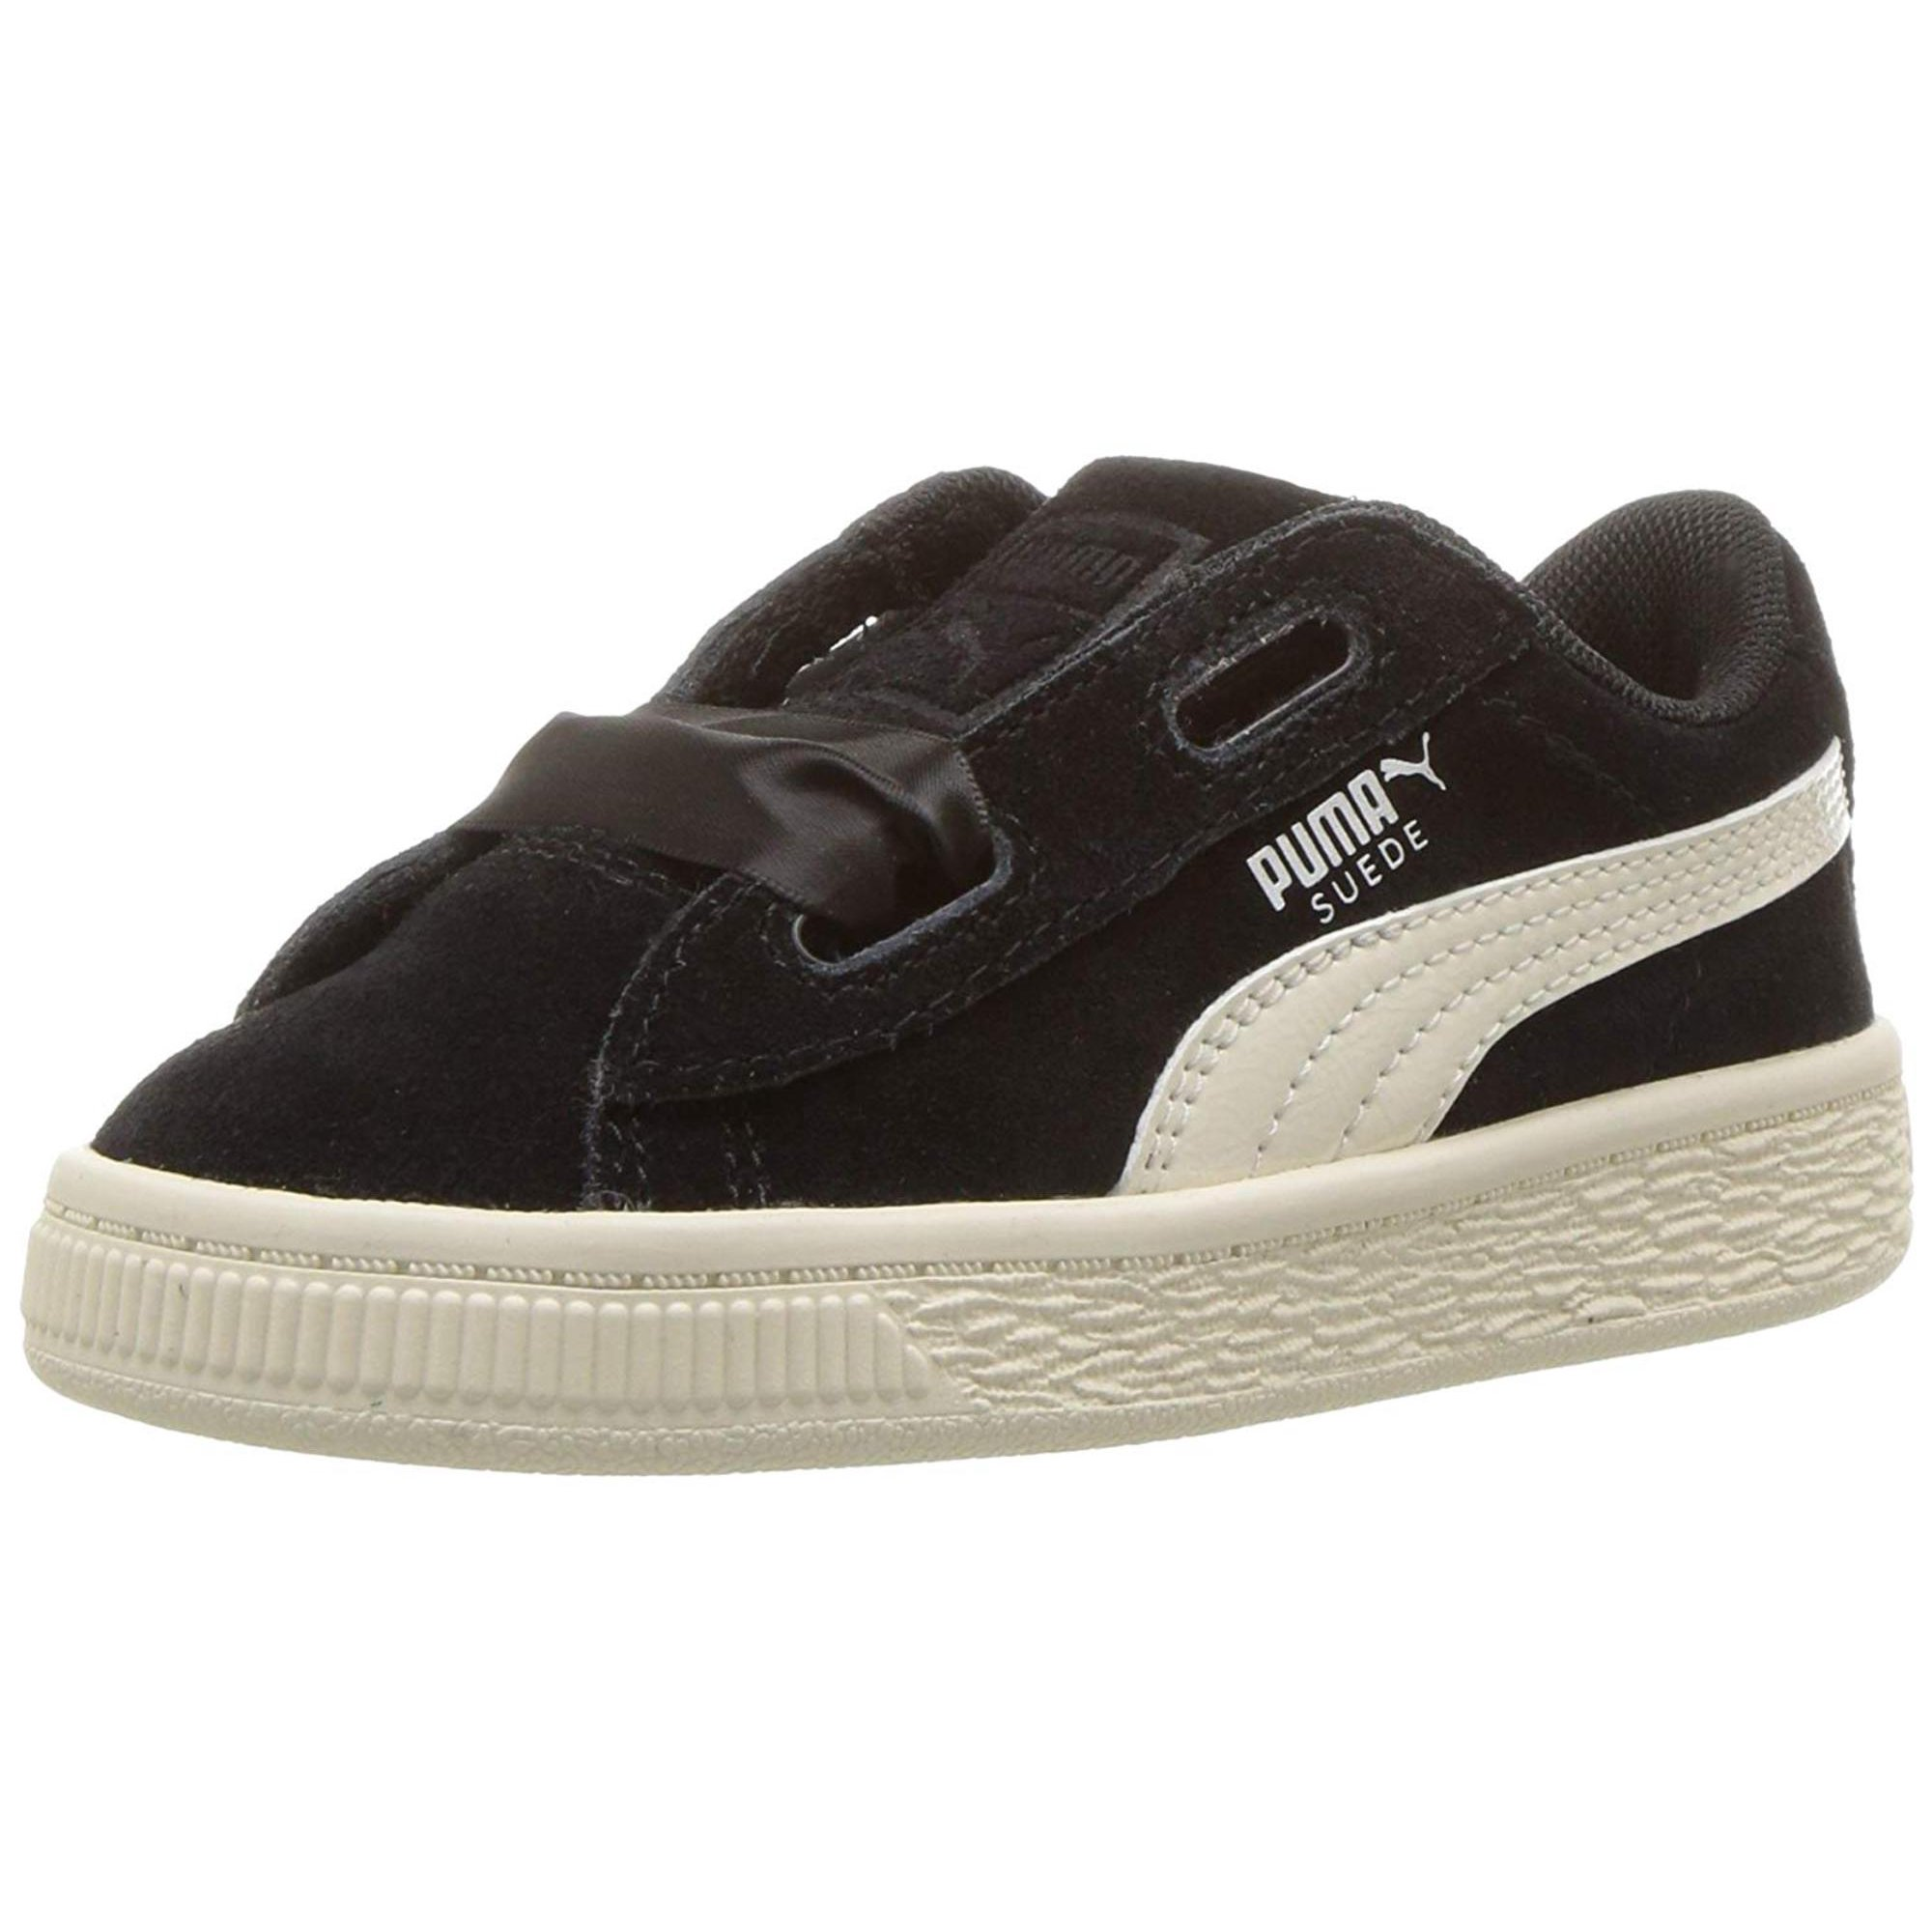 info for 14f23 5812d Puma Suede Heart Jewel Black/Whisper White Ankle-High ...